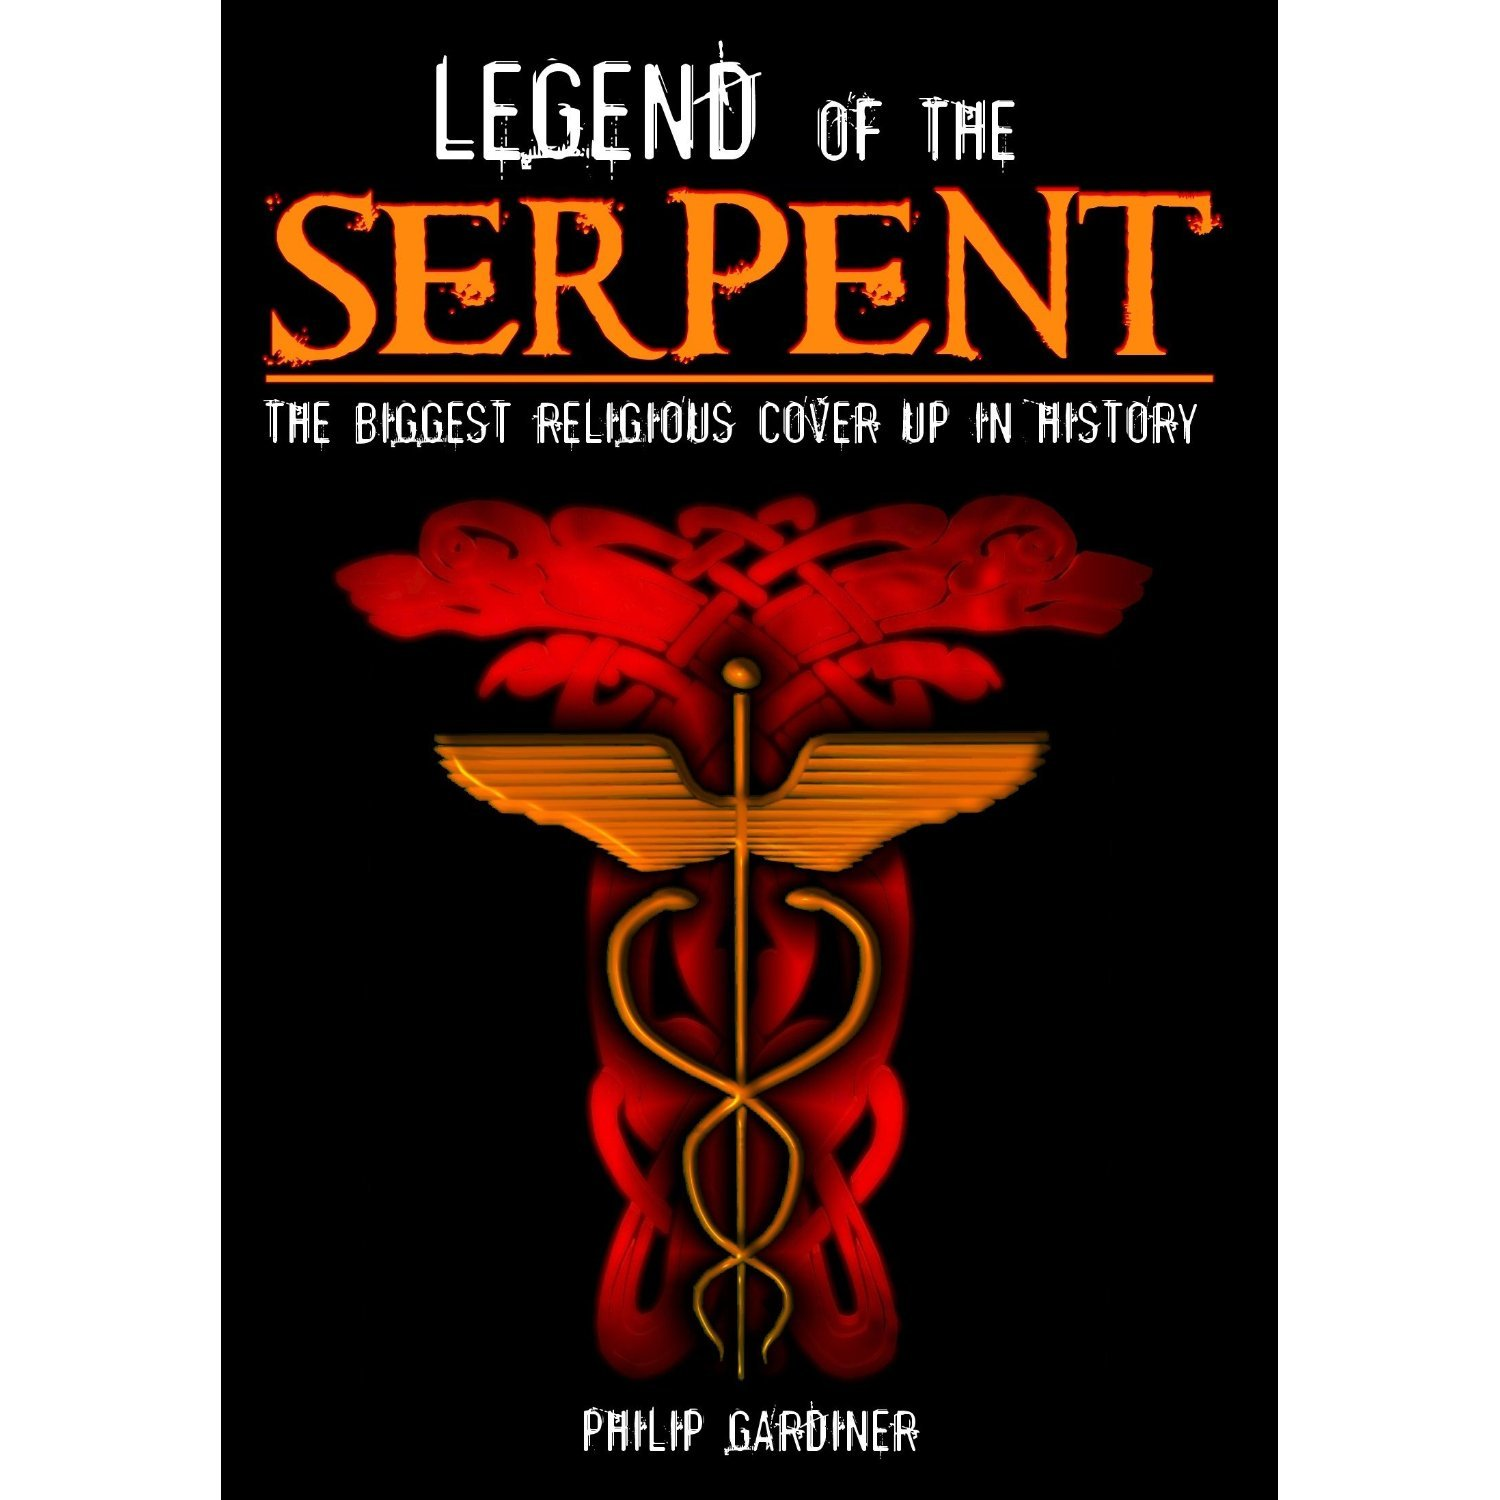 DVD : Philip Gardiner - Legend Of The Serpent: Biggest Religious Cover Up In History (Full Frame)